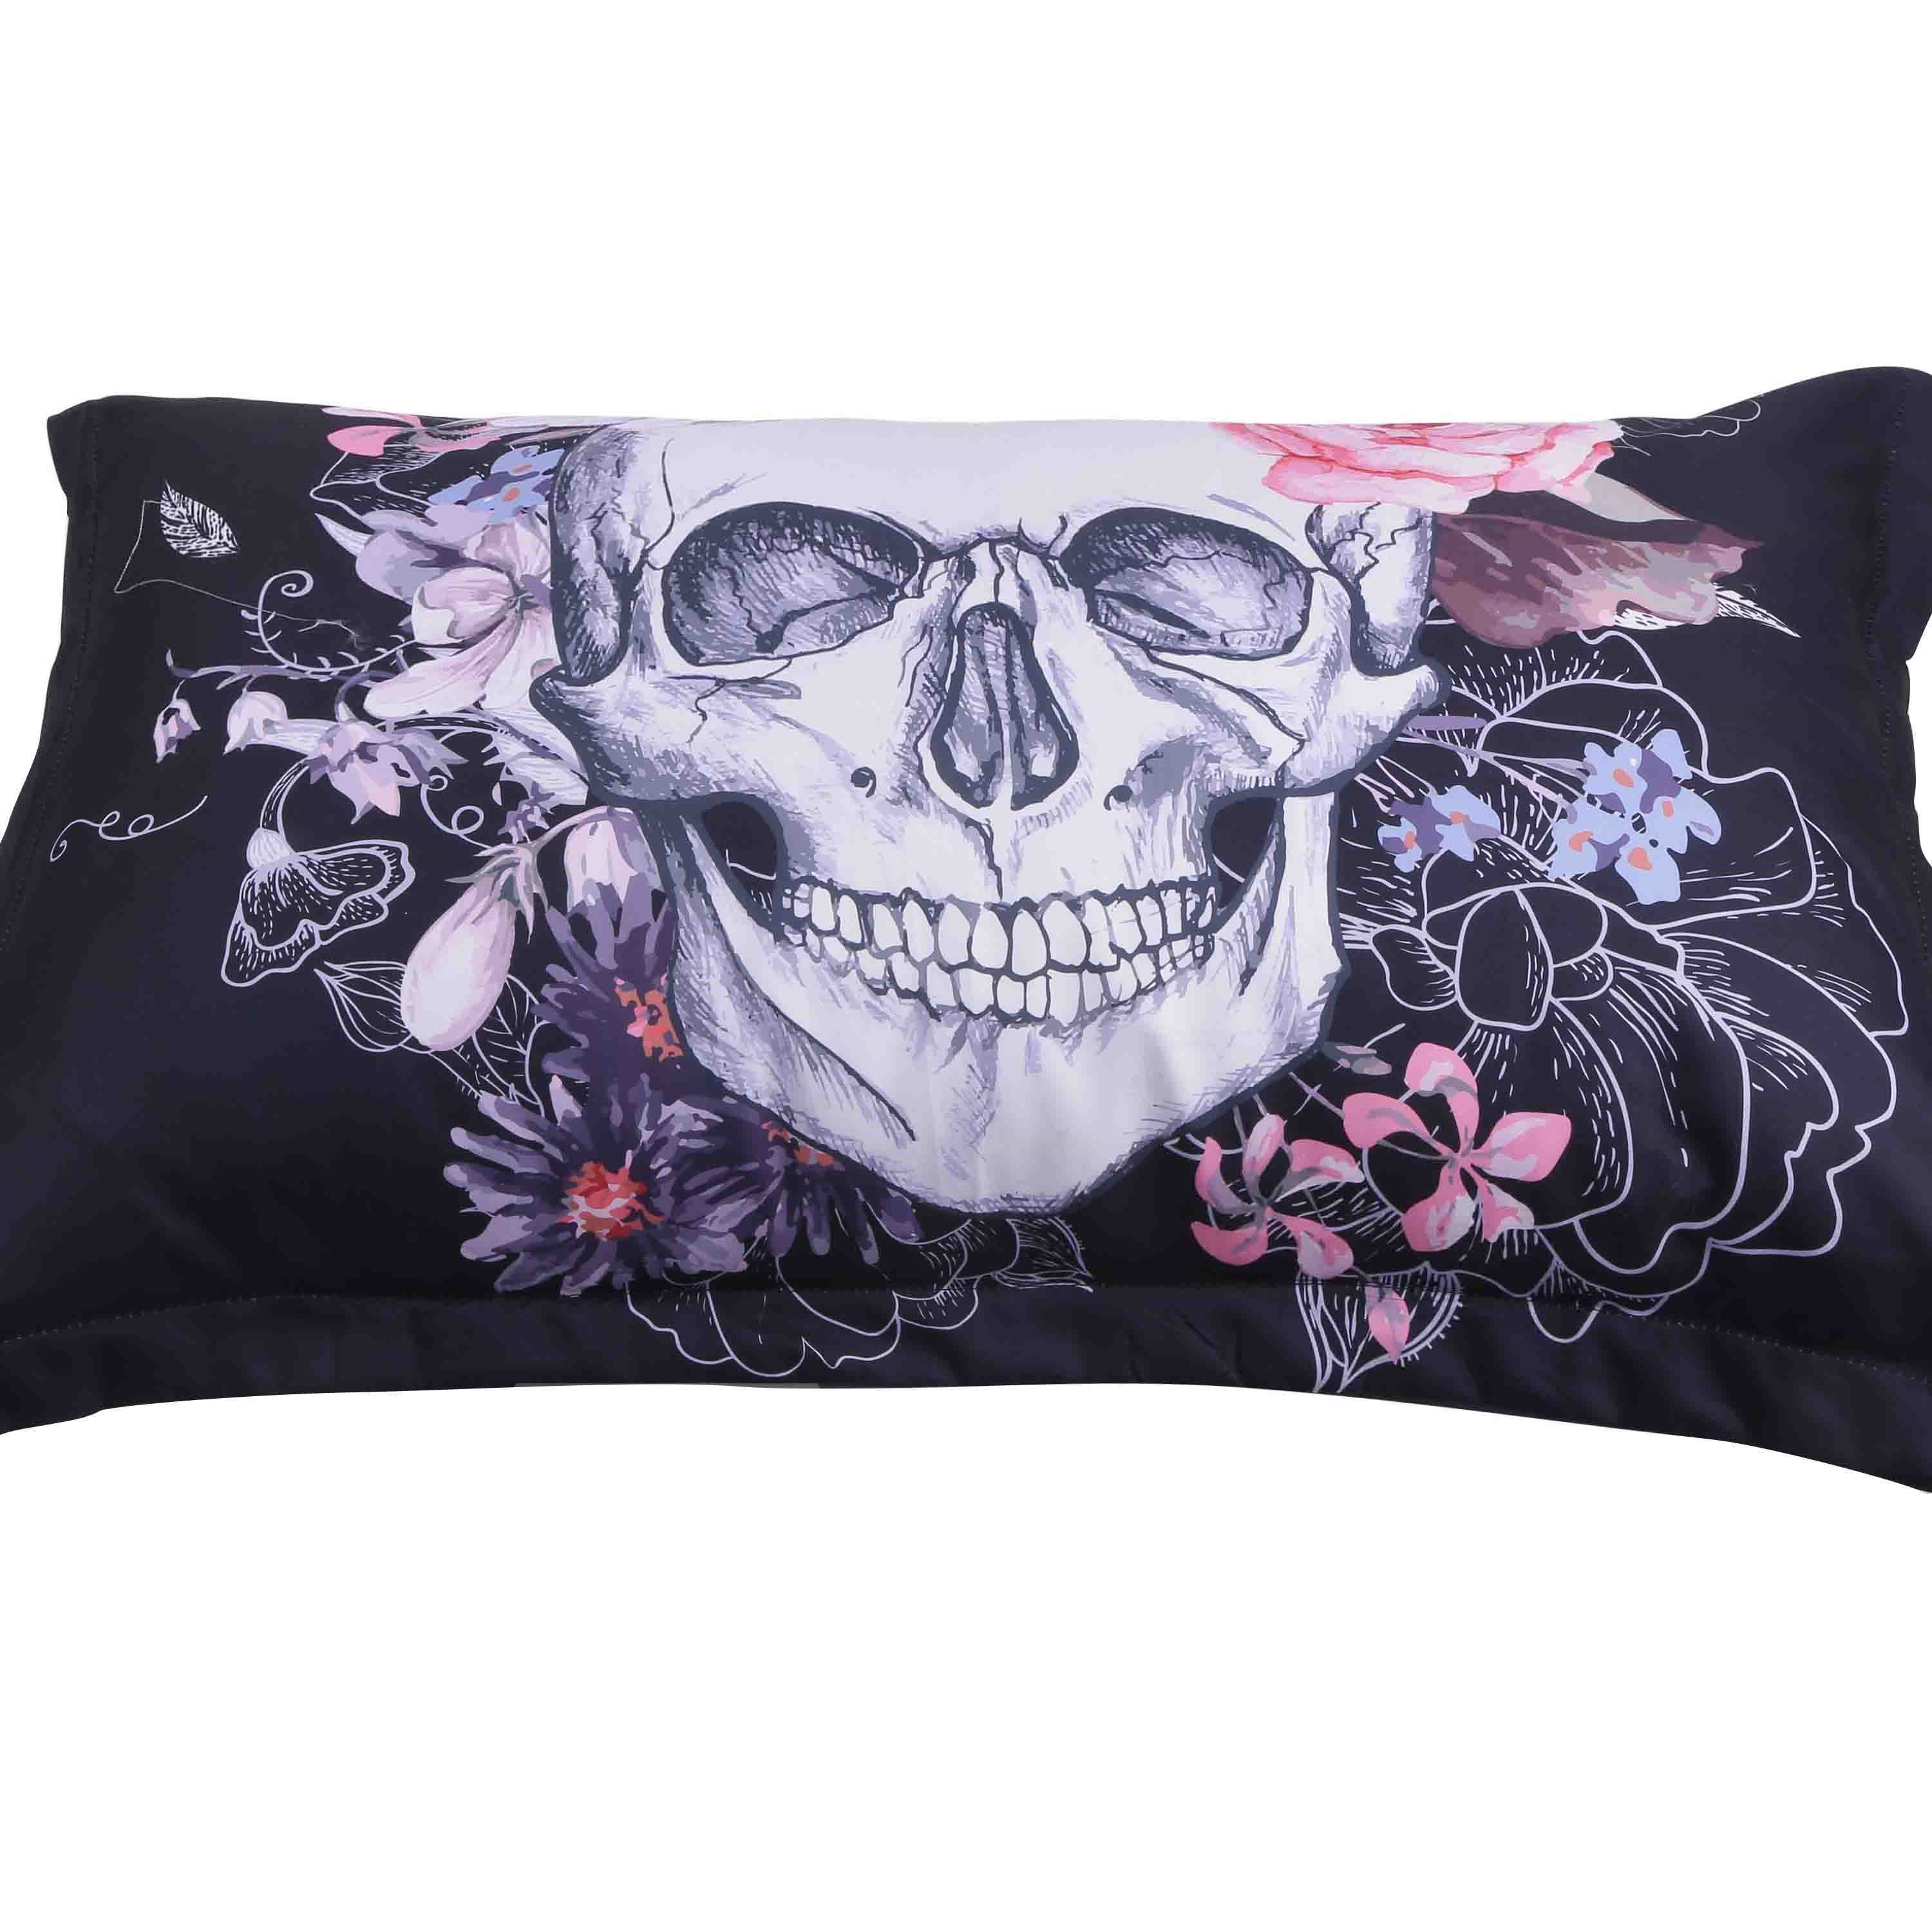 3D Skull and Flowers Printed Cotton 4-Piece Black Halloween Bedding Sets/Duvet Covers